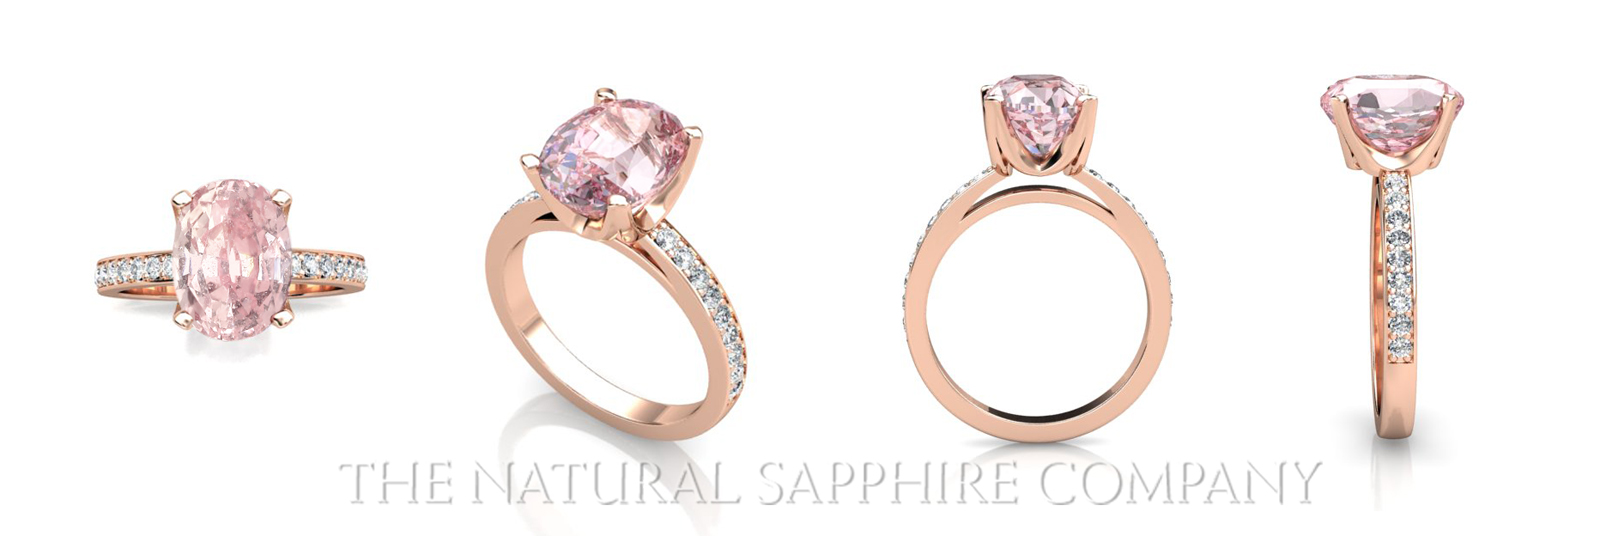 pink sapphire ring in rose gold - Wedding Ring Cuts